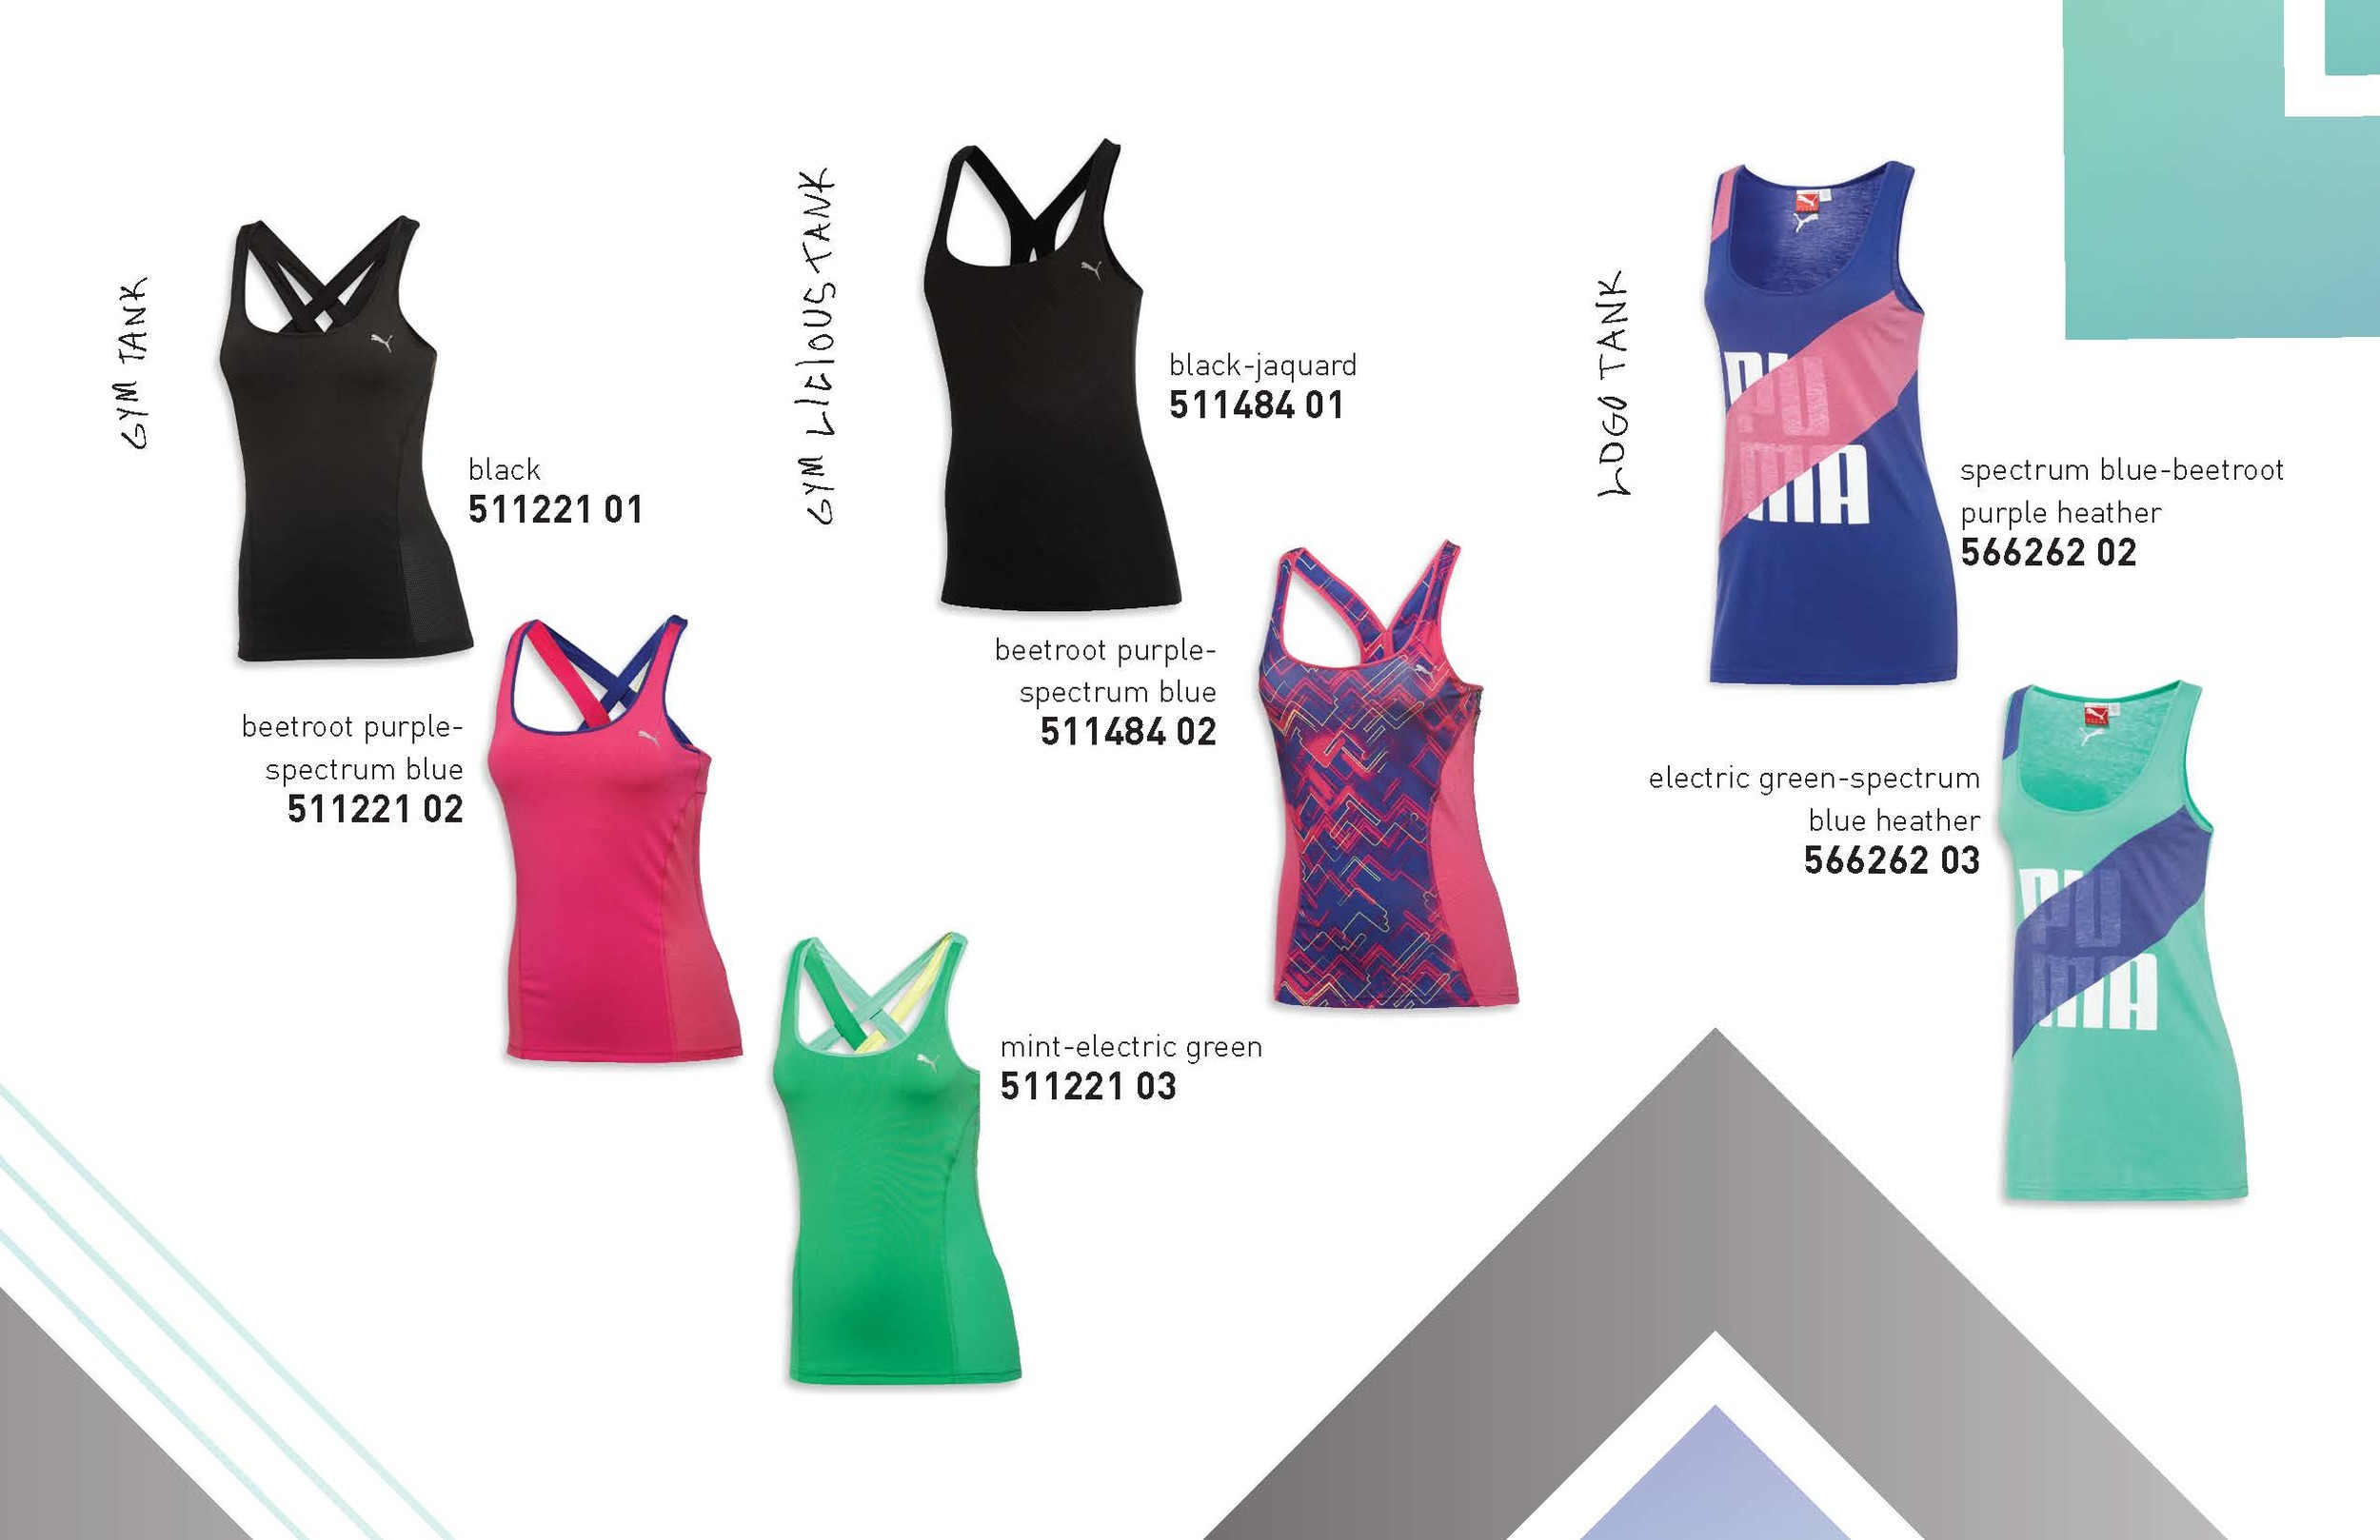 PUMA_booklet_7-30-13_HIRES_view_Page_07.jpg